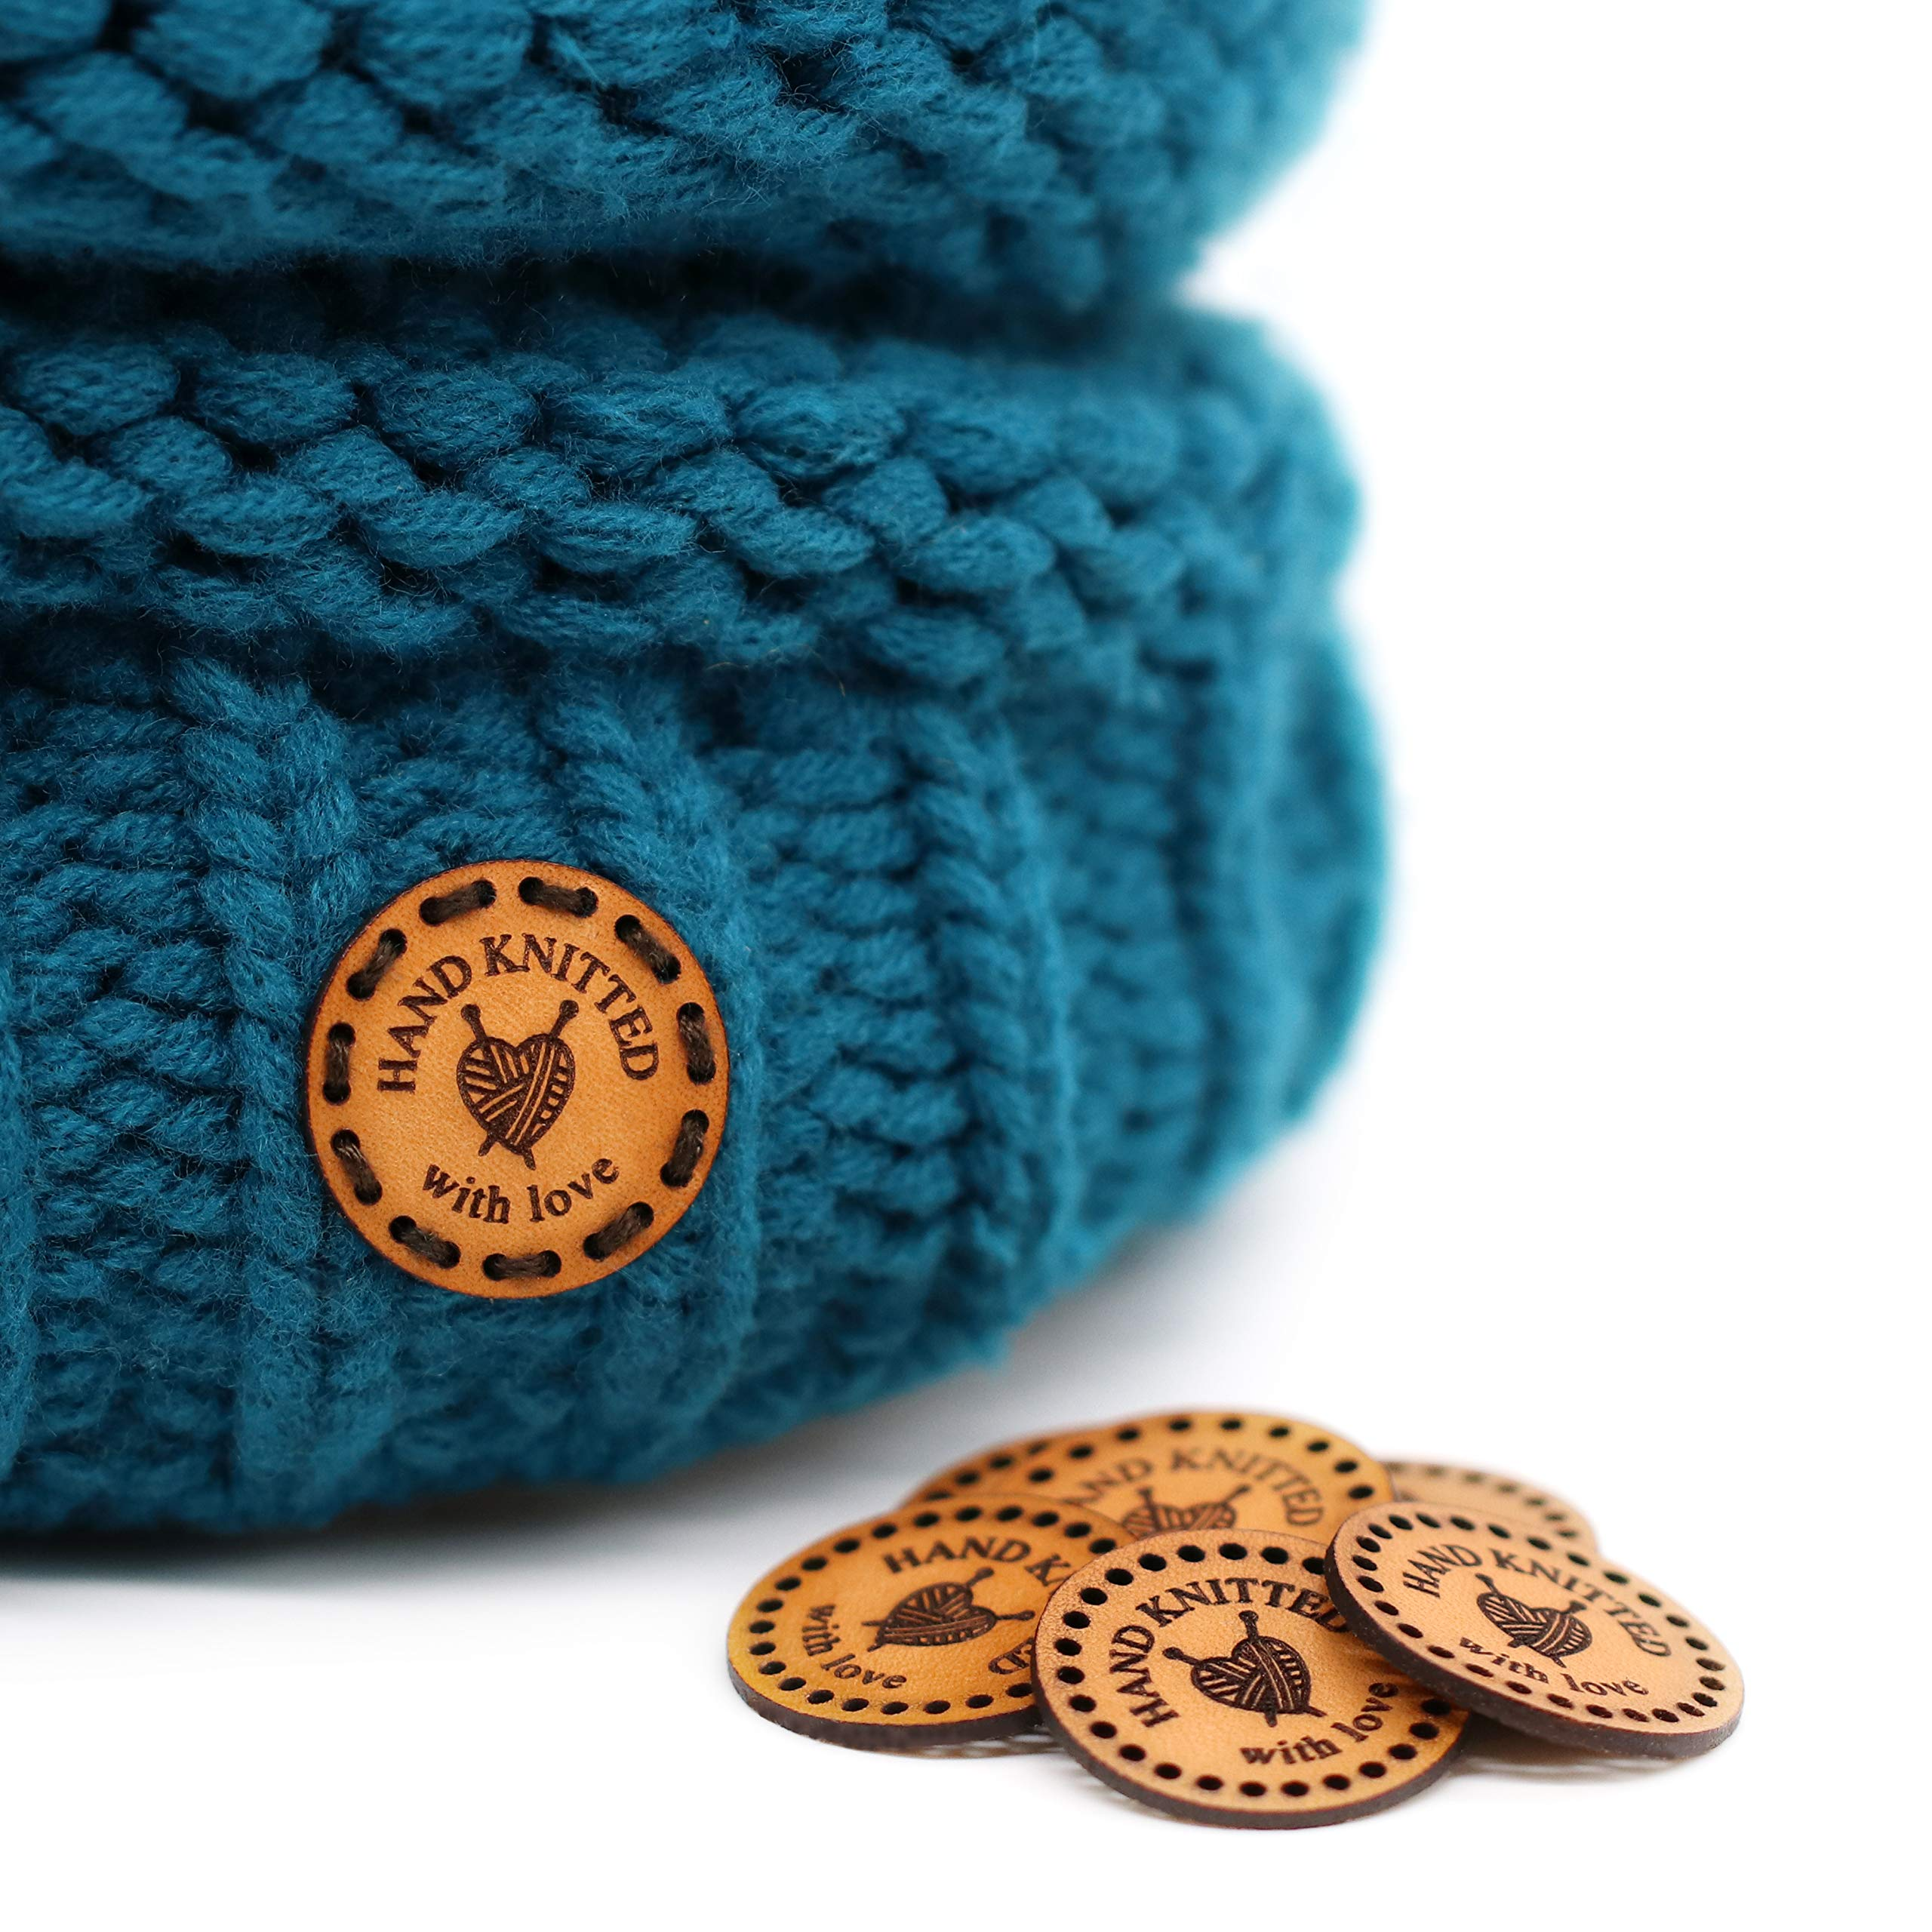 Round Handmade Leather Labels RO01''Hand Knitted with Love'' | 15 pcs | Exclusive Engraved Genuine Italian Leather Tags